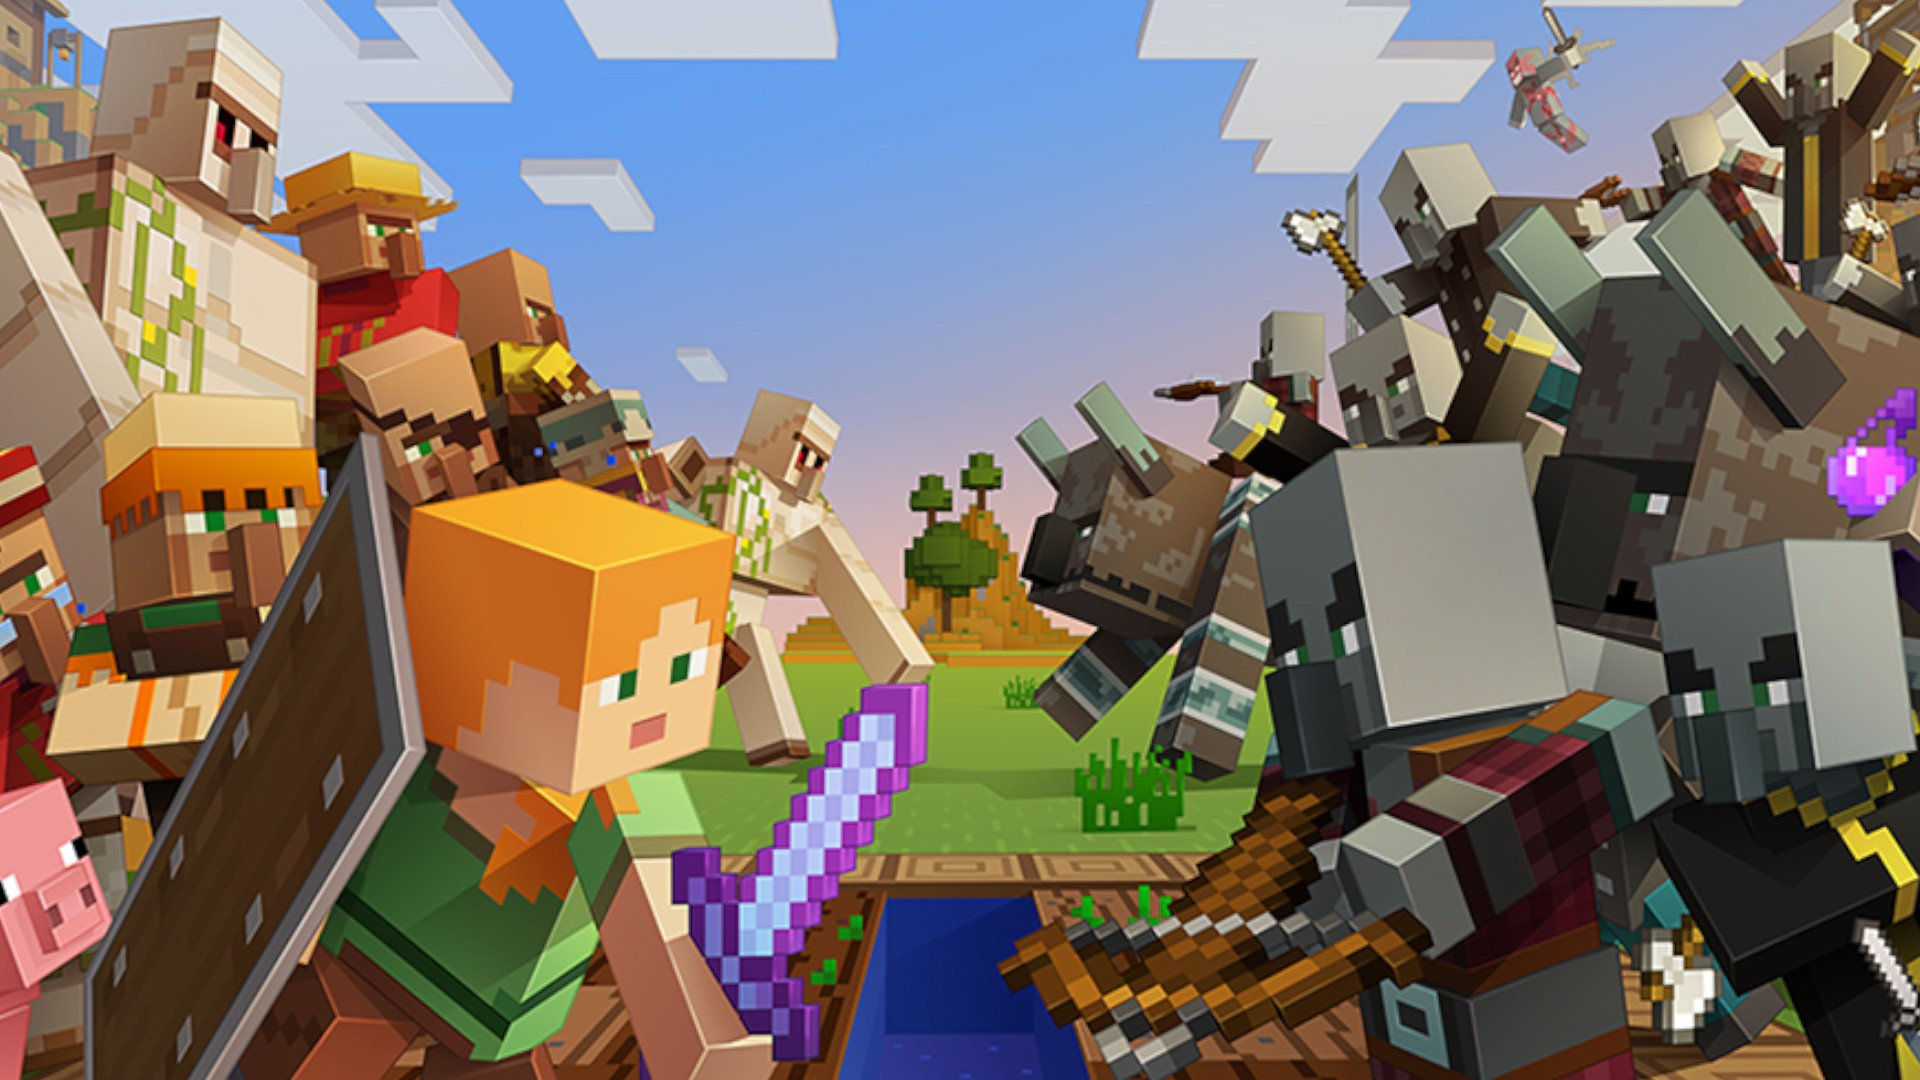 Minecraft Bedrock Edition 1.16.100.56 Beta Has A Variety Of Different Changes Focused on Creators